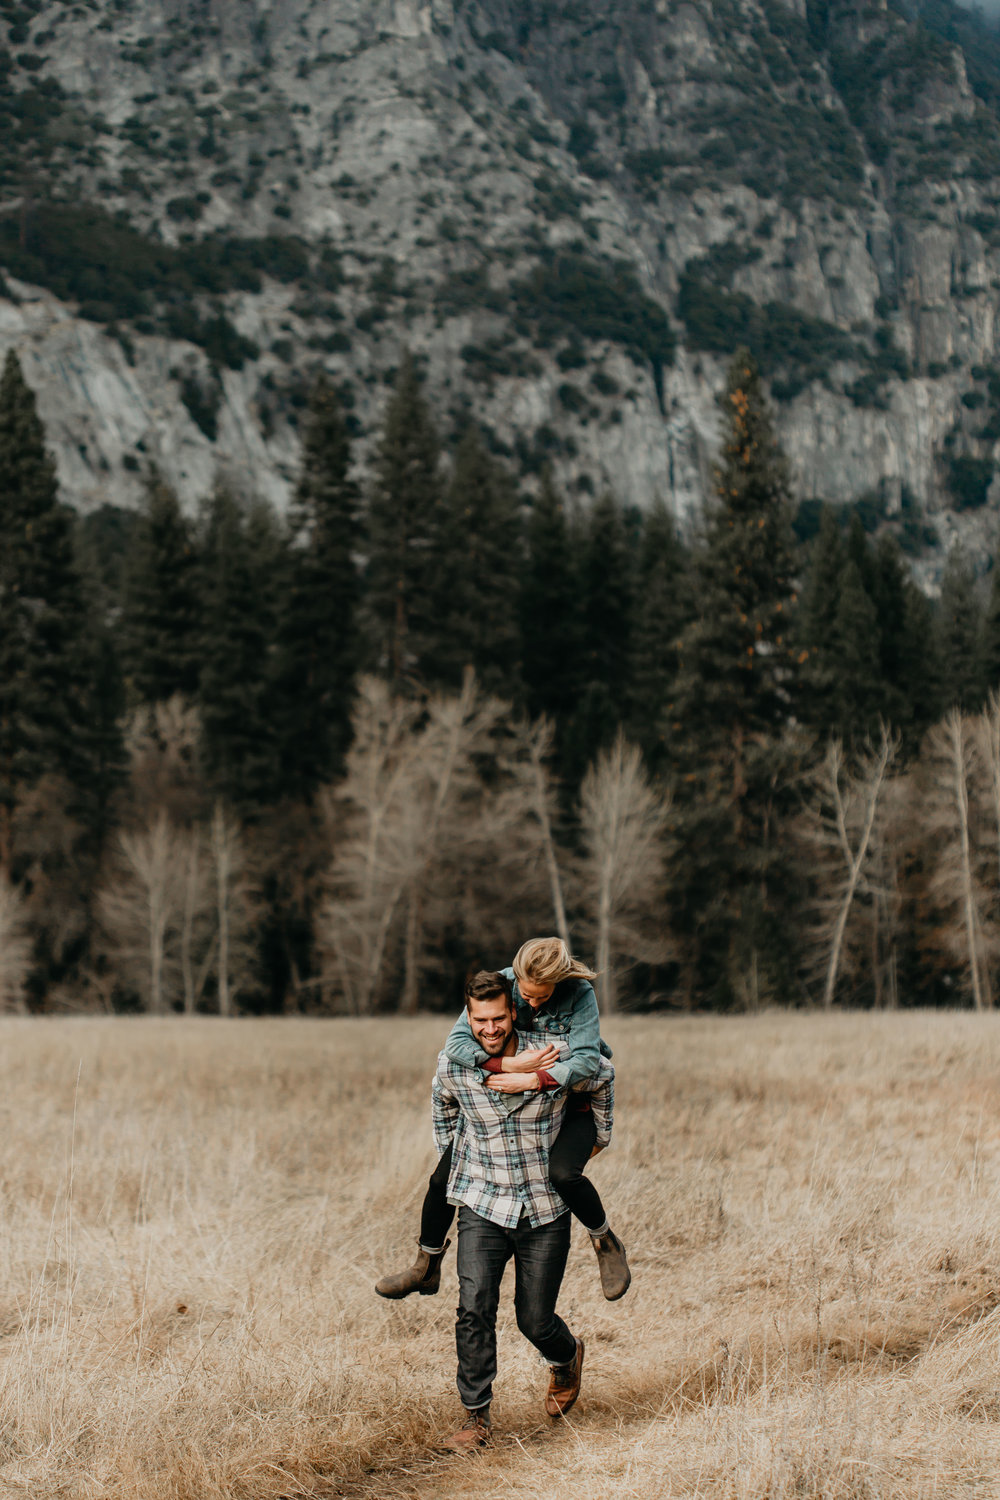 nicole-daacke-photography-yosemite-national-park-engagement-session-yosemite-valley-adventure-session-california-77.jpg